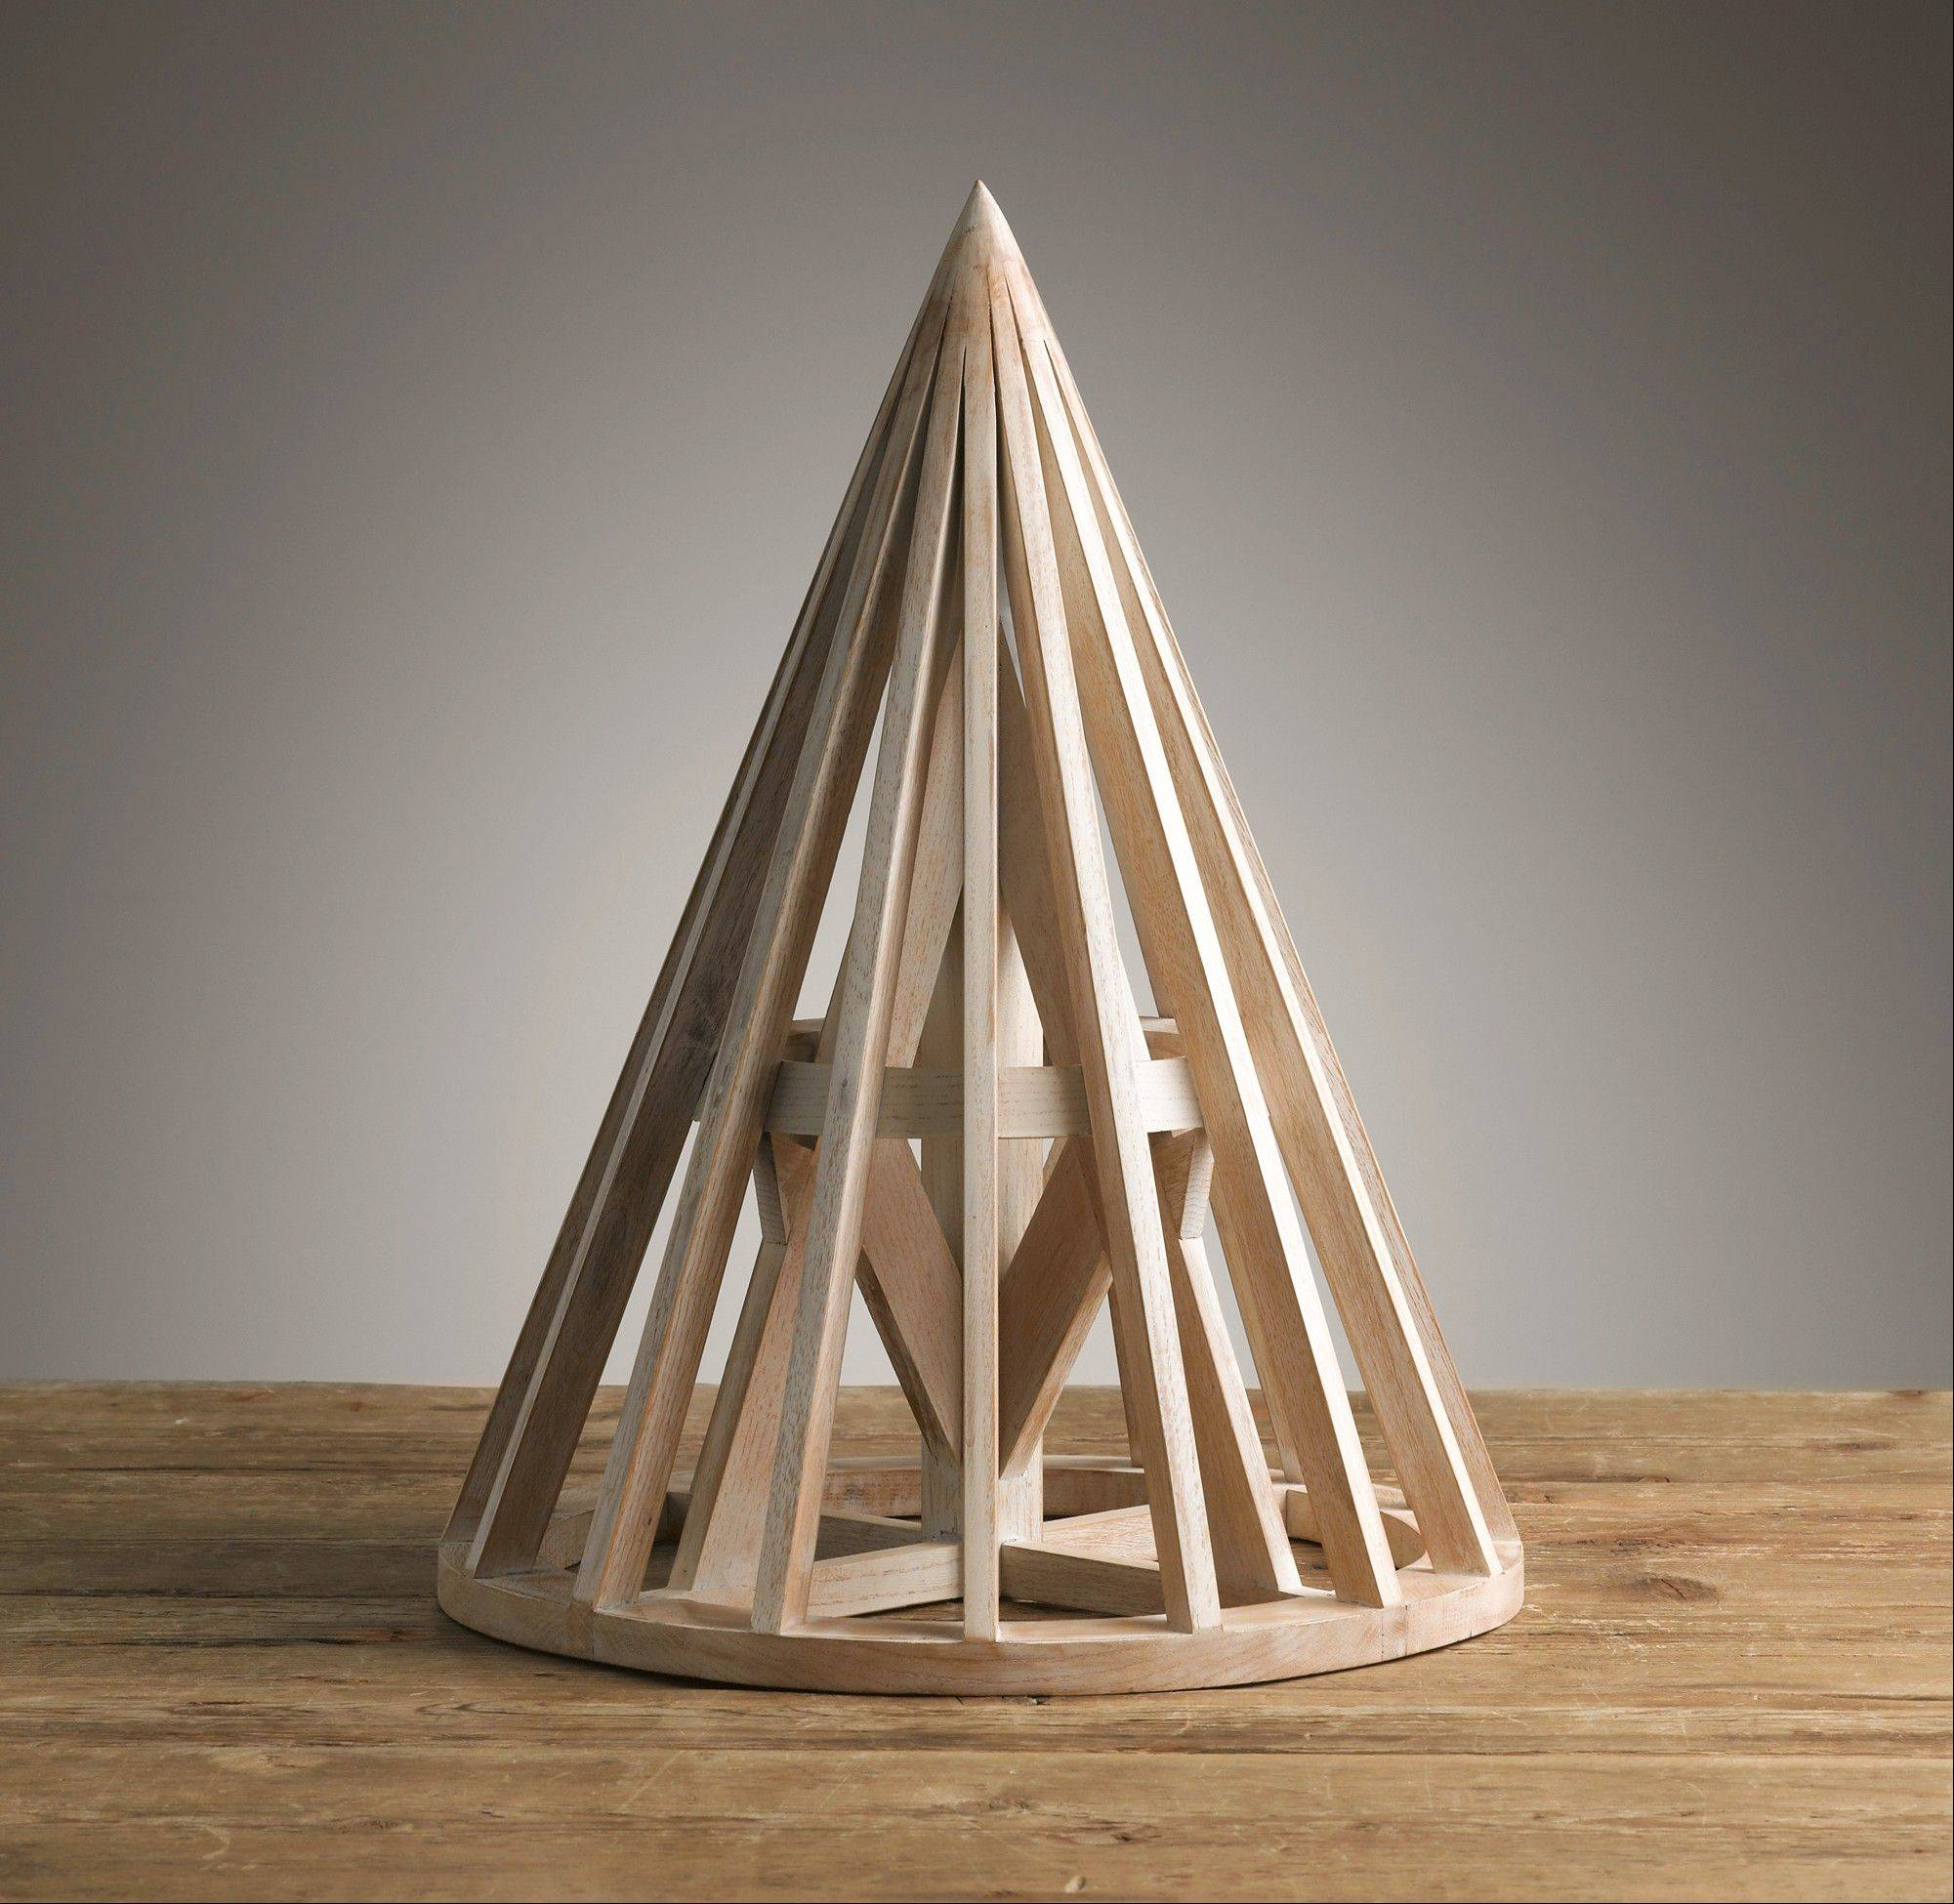 This Belgian wooden maquette is a scaled replica of a model used by an architect to study form, structure and proportion. Geometric shapes are strong decor elements for autumn.